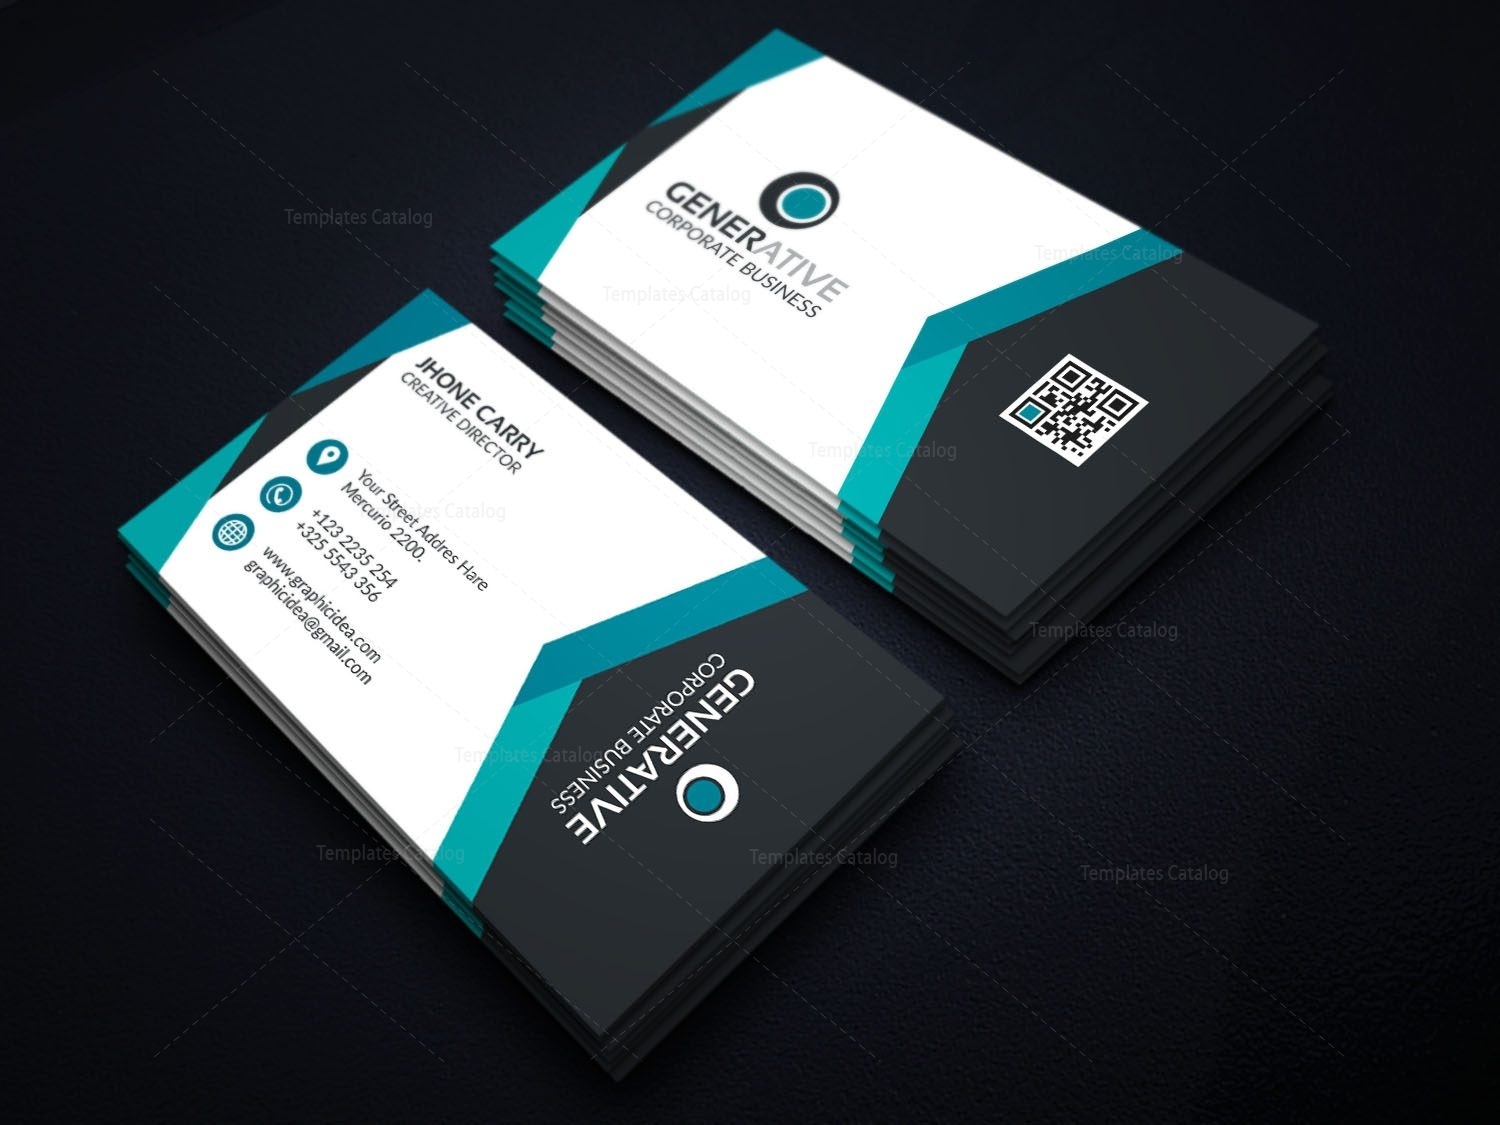 Eps modern business card design template 001595 template catalog eps modern business card design template 4 flashek Images